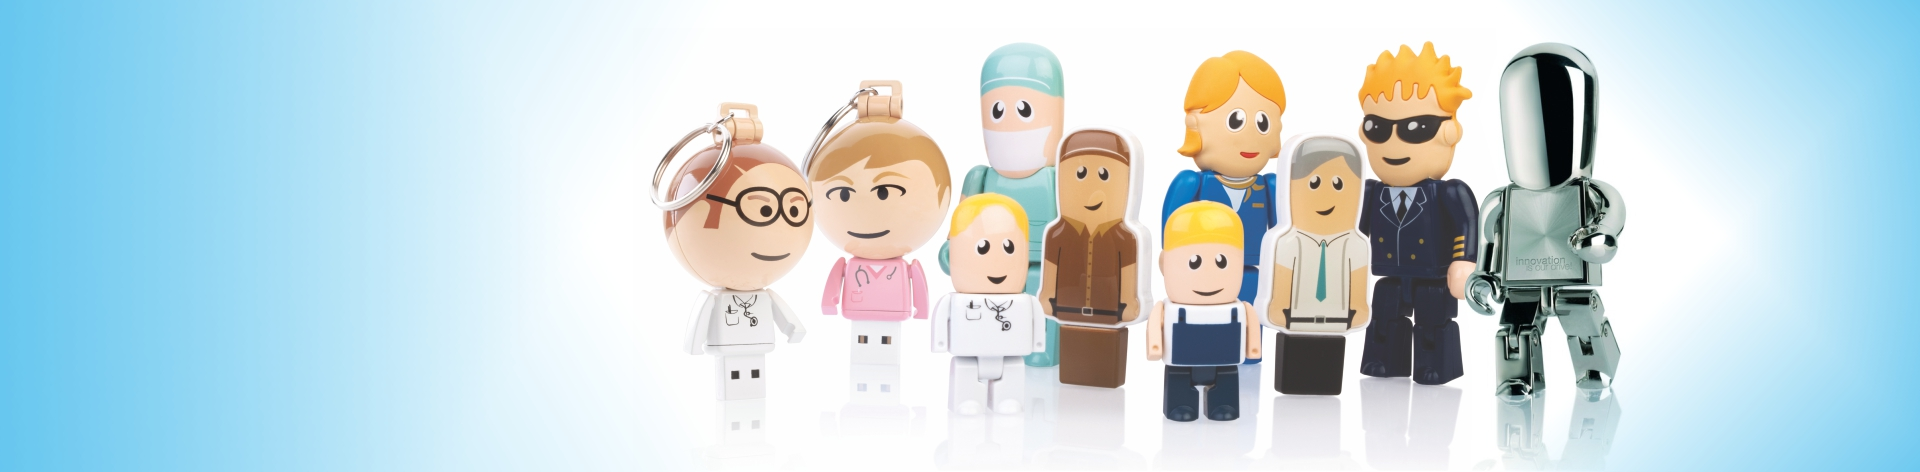 USB-PEOPLE - USB Flashdisk USBSHOP PSL DESIGN